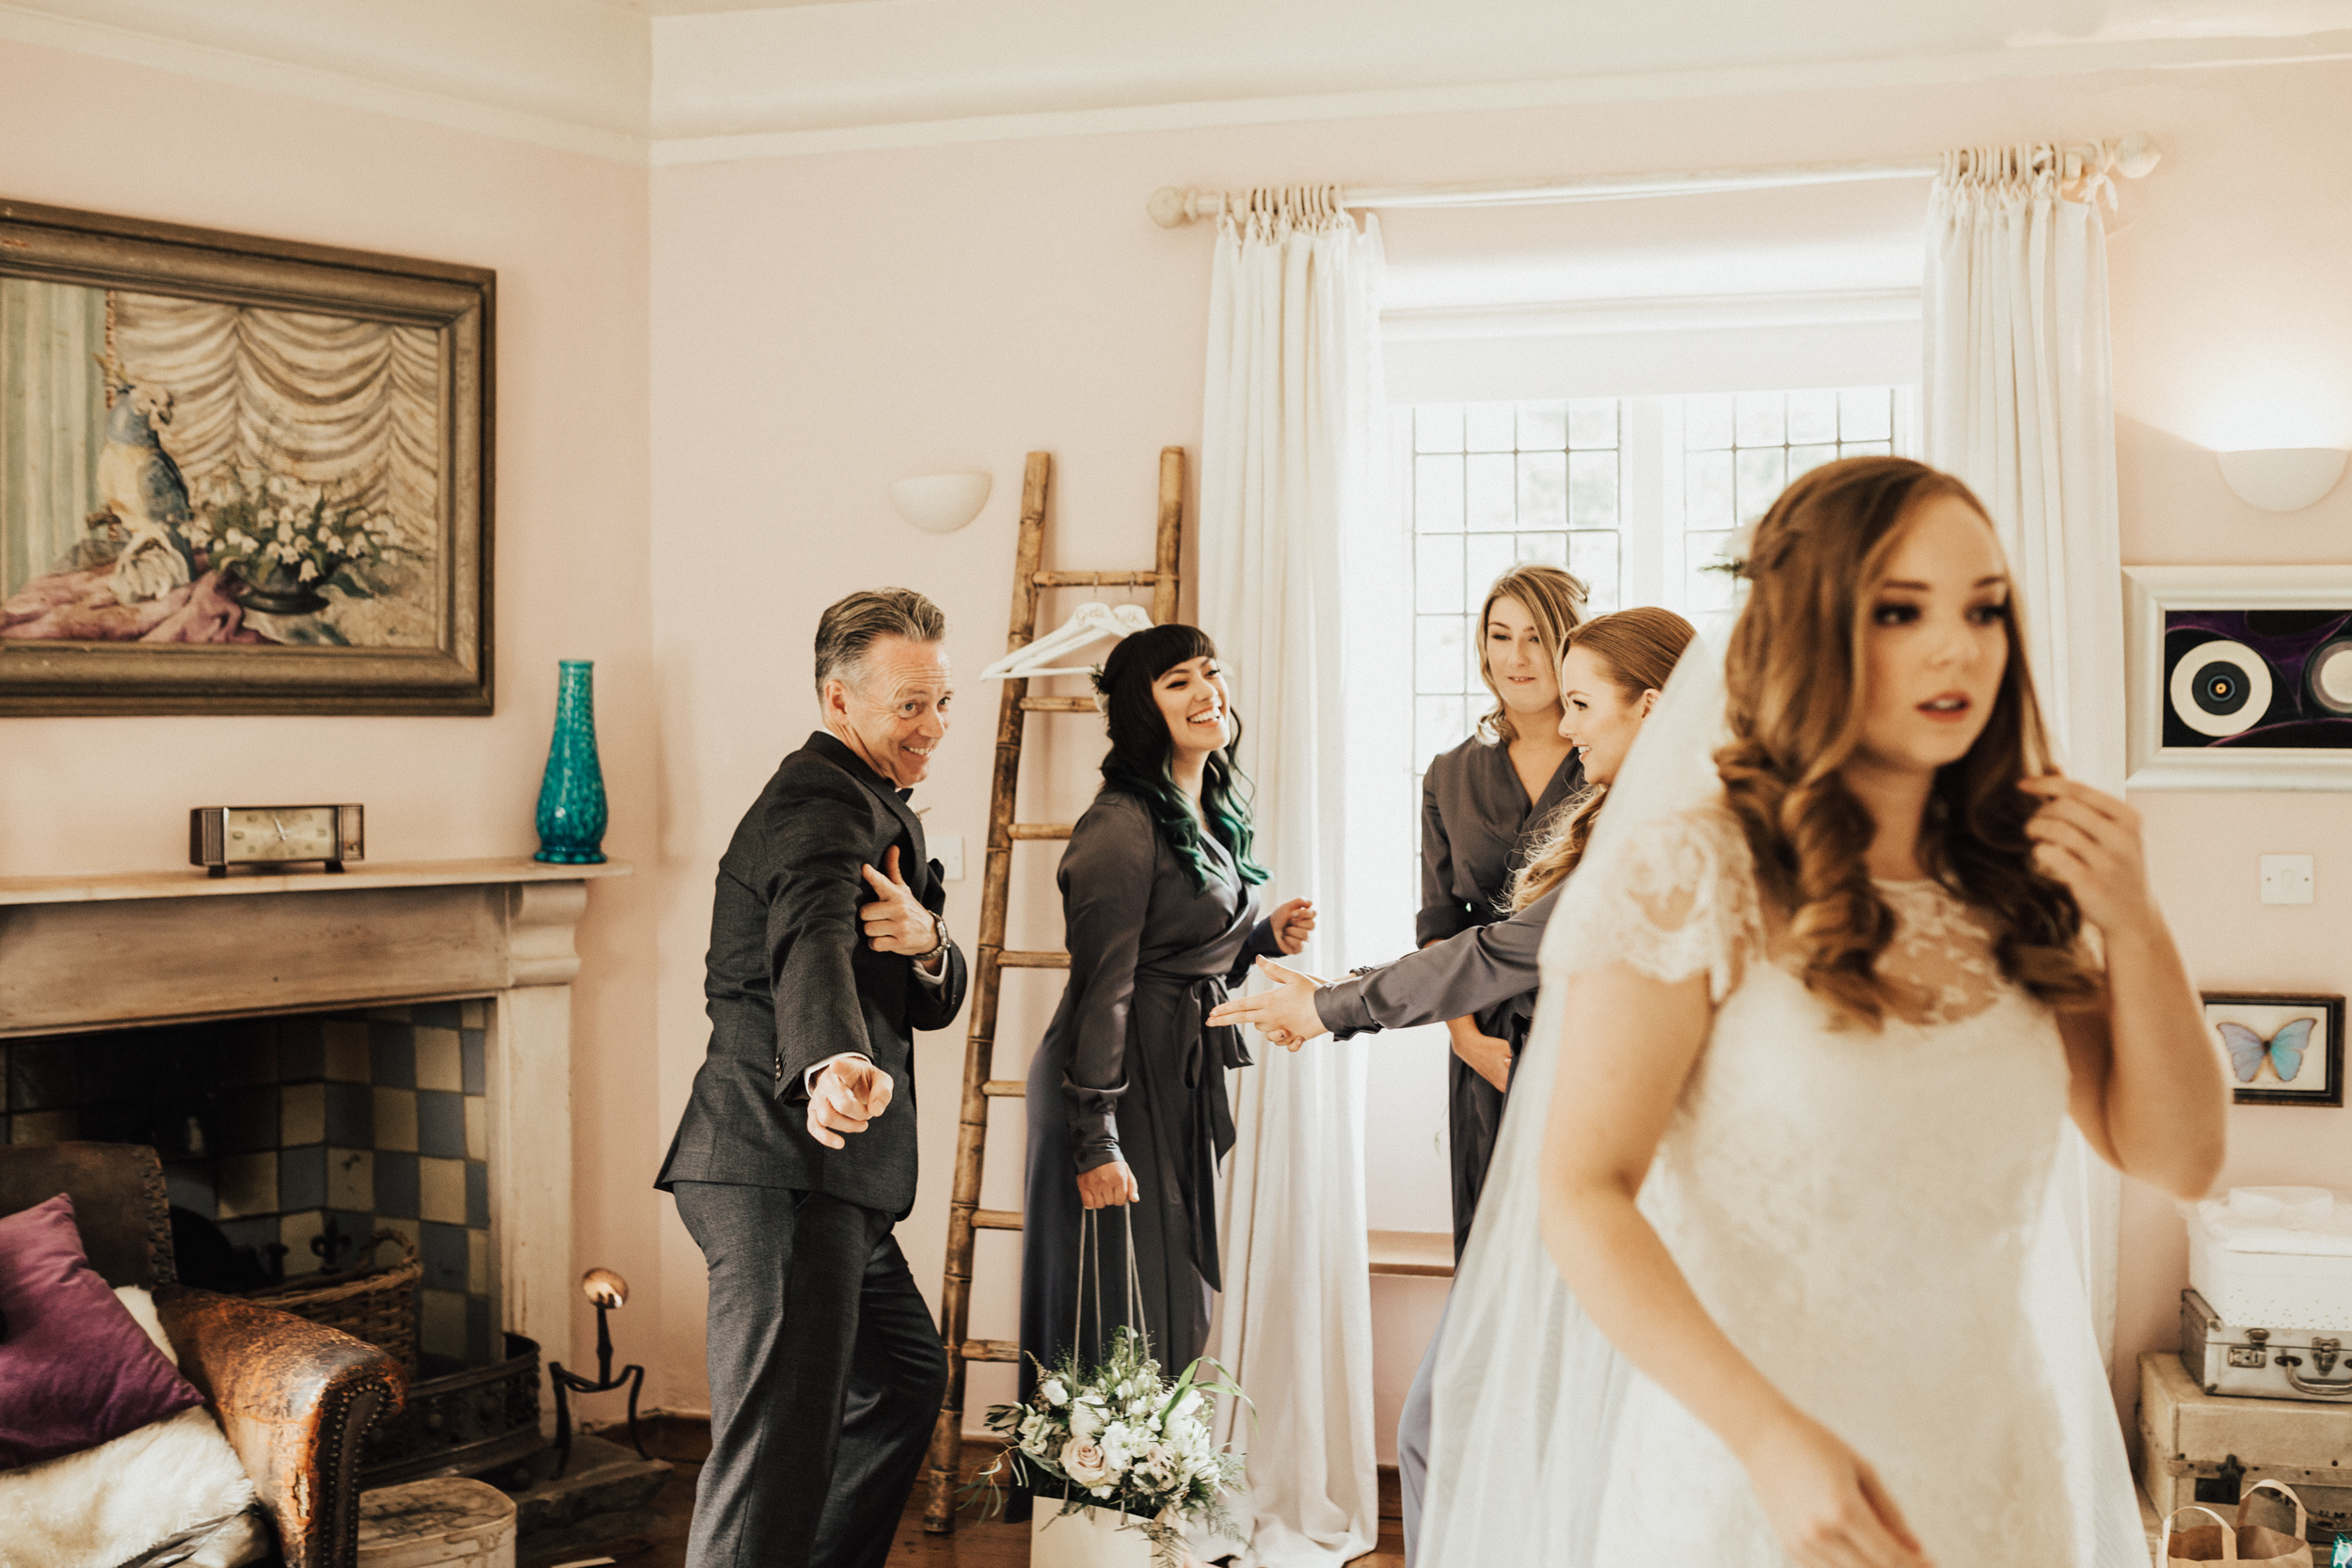 Lois-Conor-Wedding-Norfolk-Voewood-Darina-Stoda-Photography-50.jpg